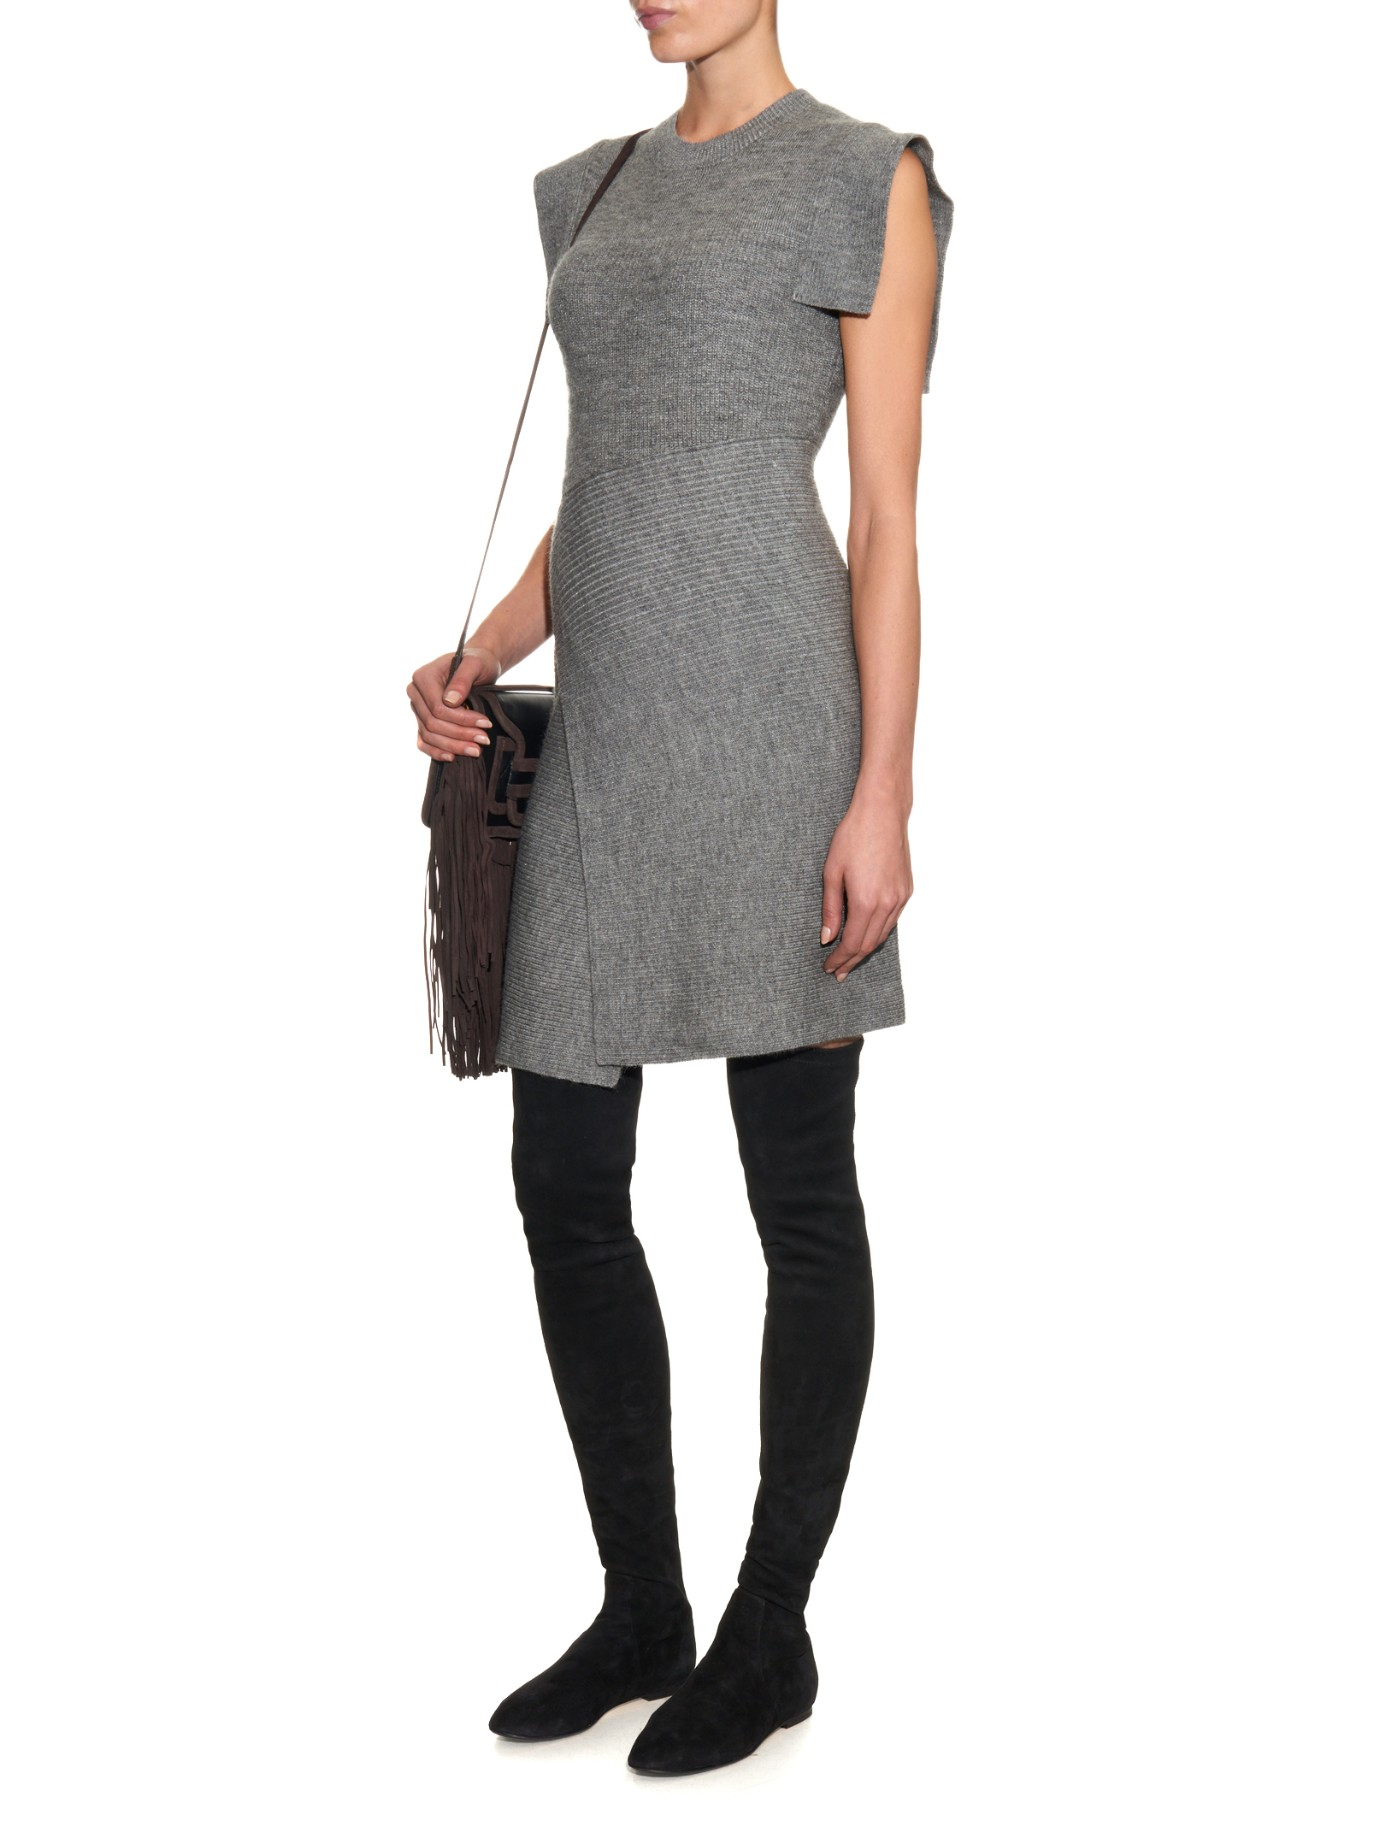 96a3664d66a Isabel Marant Brenna Suede Over-the-knee Boots in Black - Lyst